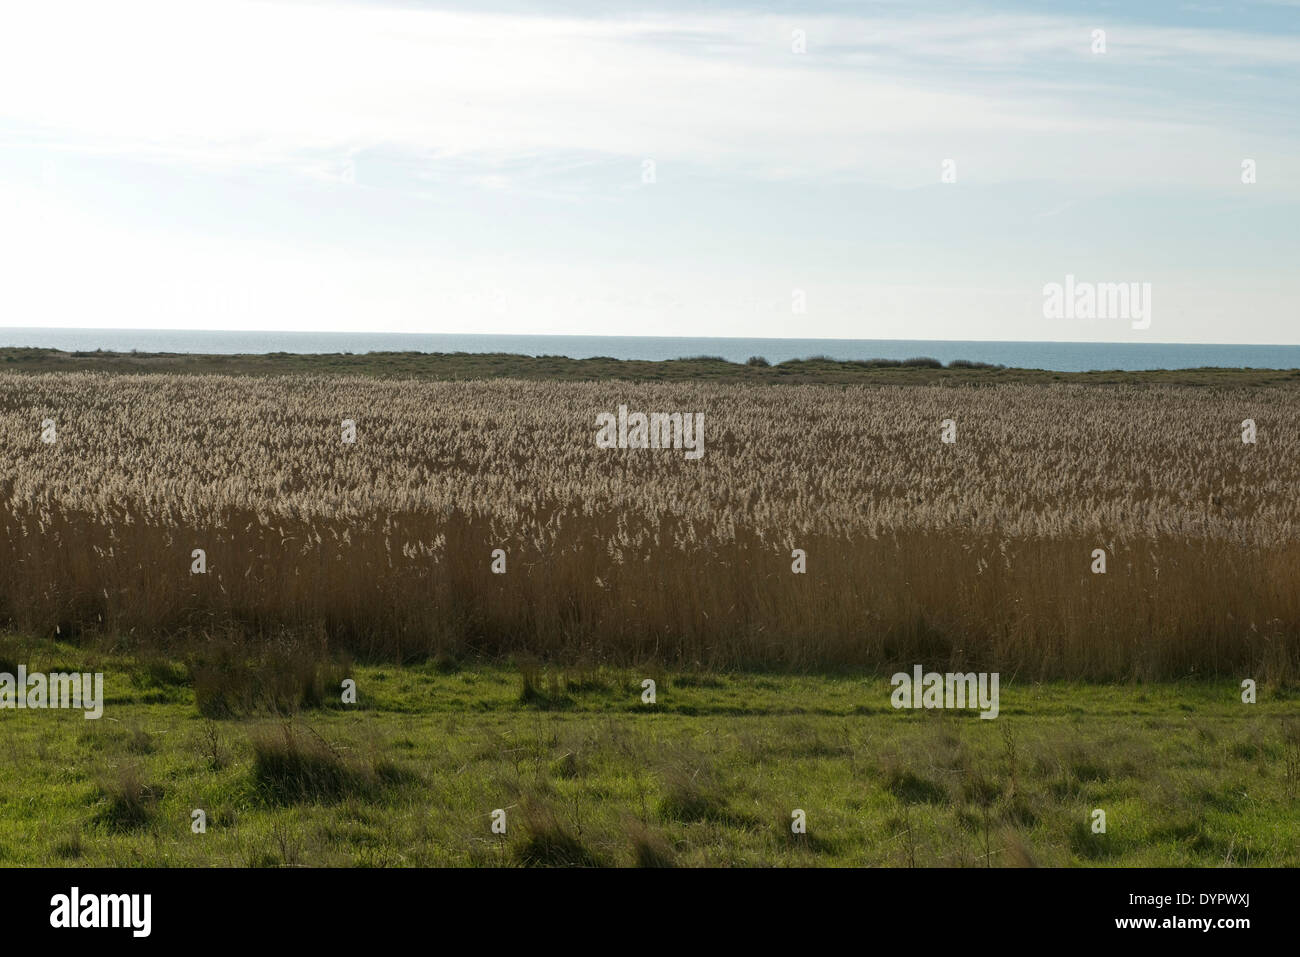 Common reed, Phragmites communis, beds in winter a refuge for wildlife behing Chesil Beach in Dorset - Stock Image